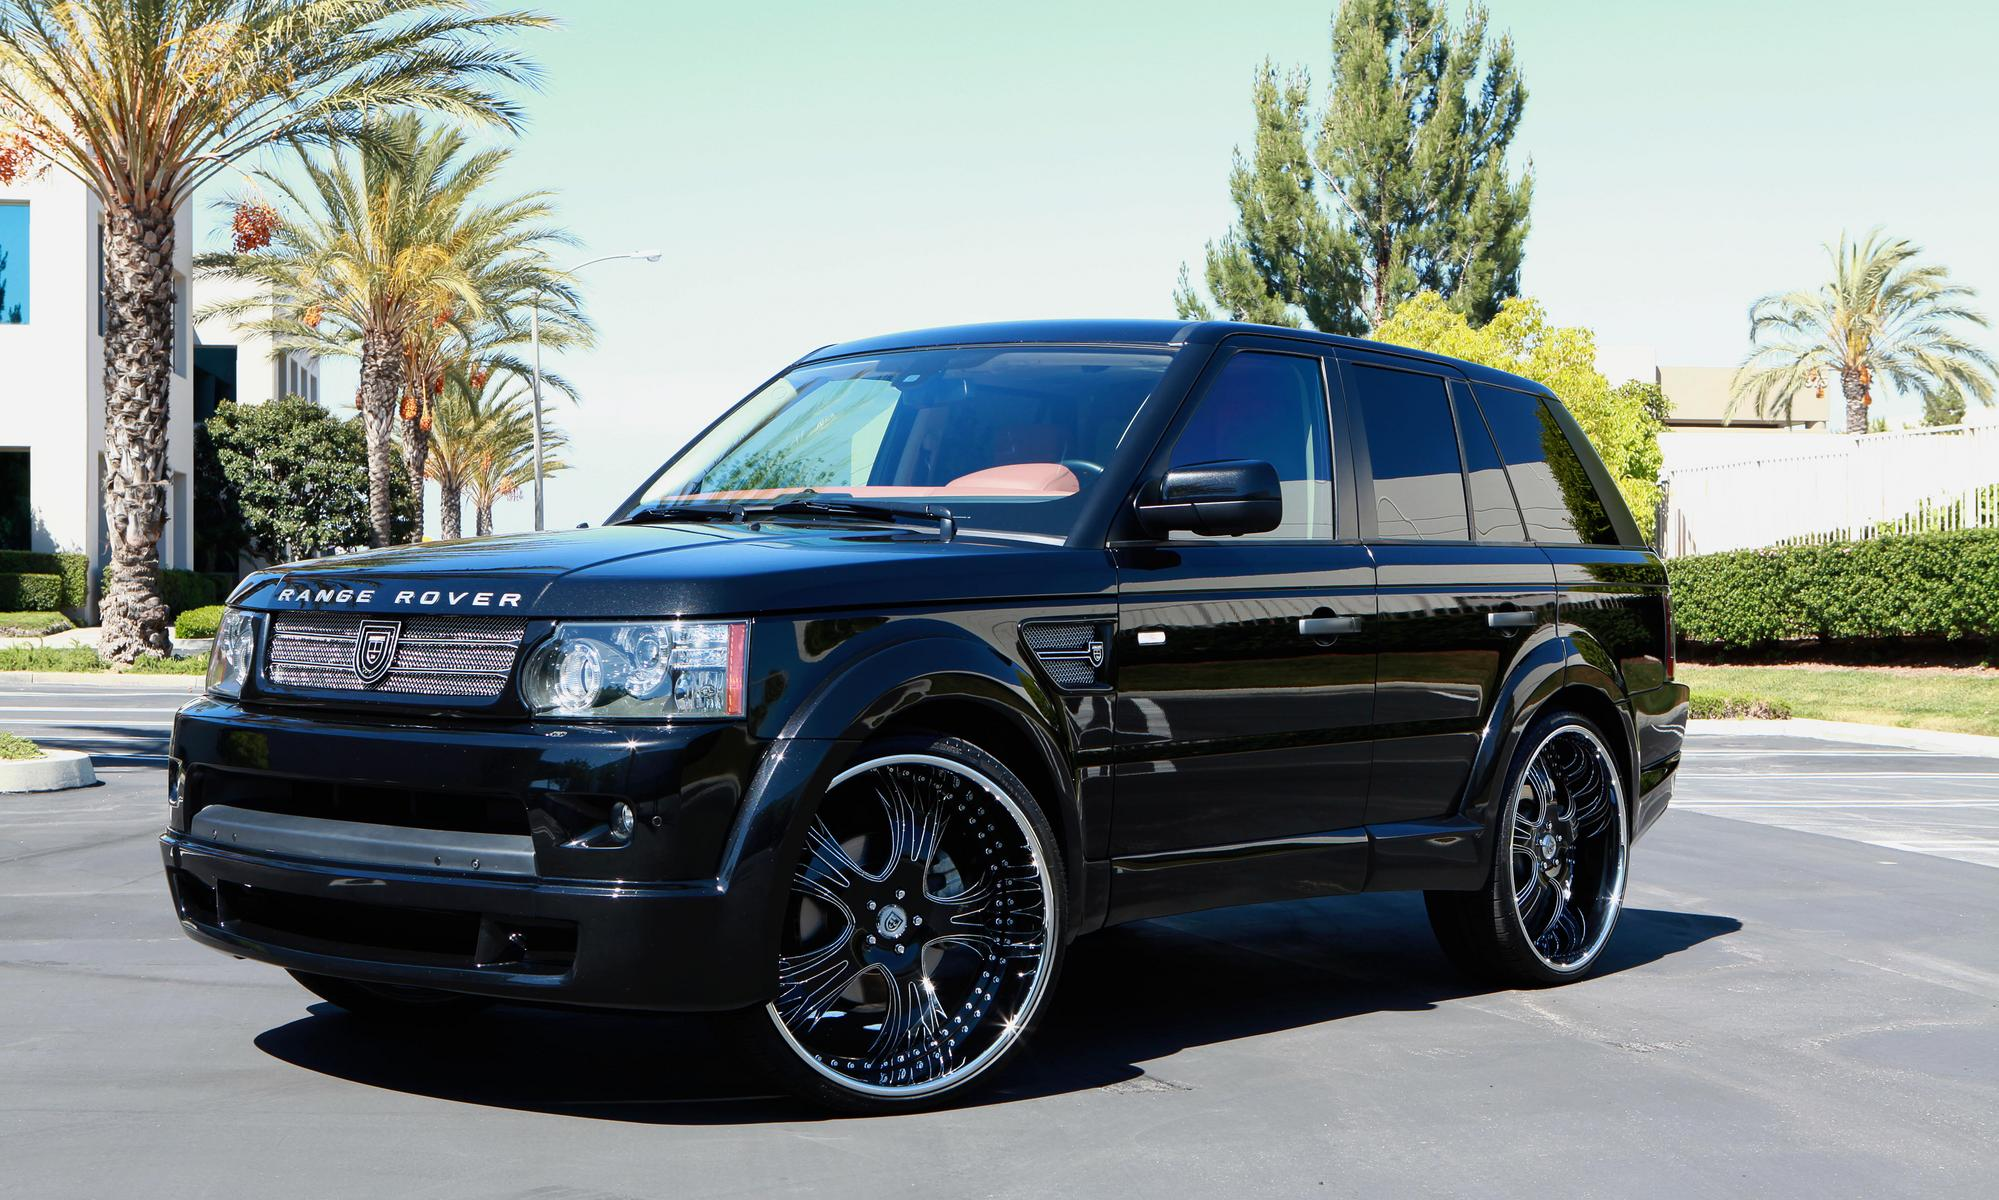 2010 black Range Rover Sport with 24